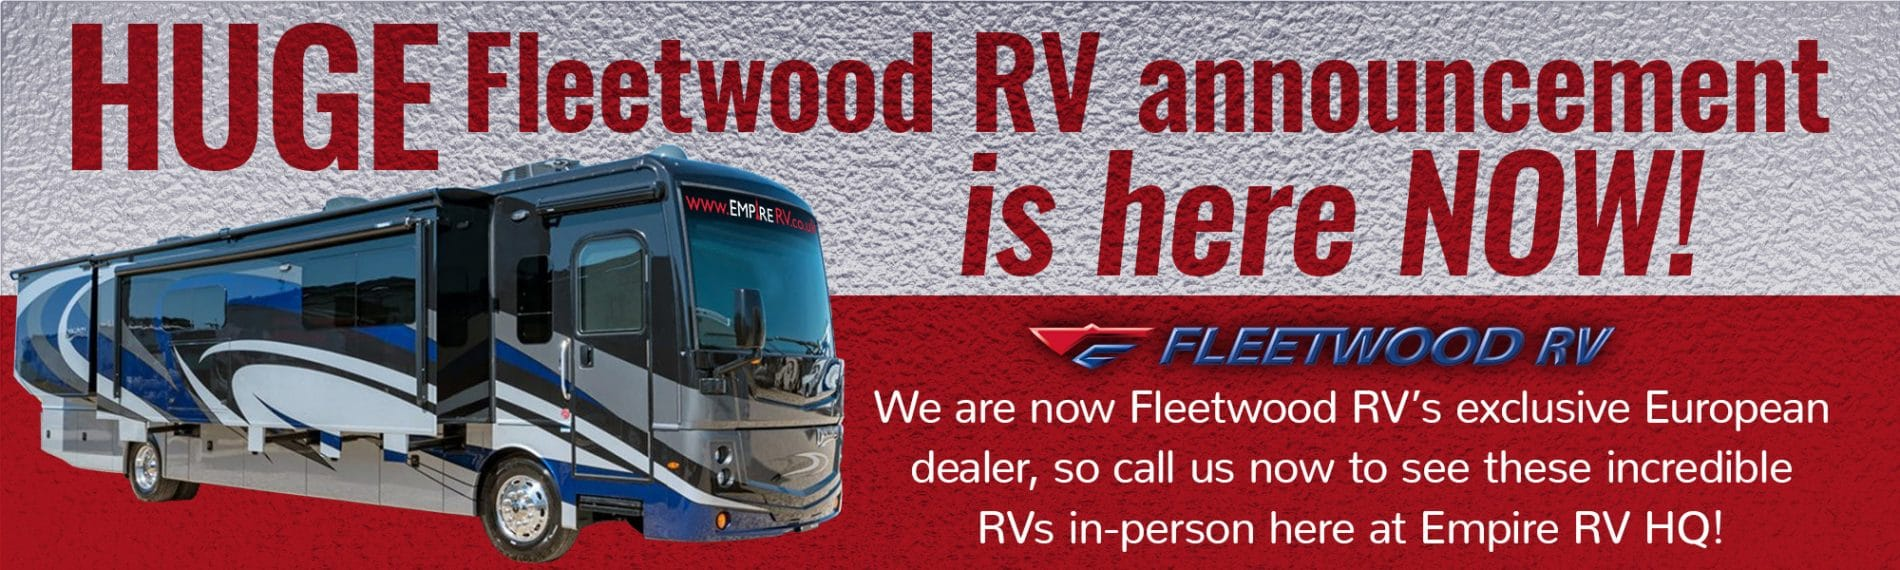 Empire RV Fleetwood RV American Motorhome UK Europe dealership